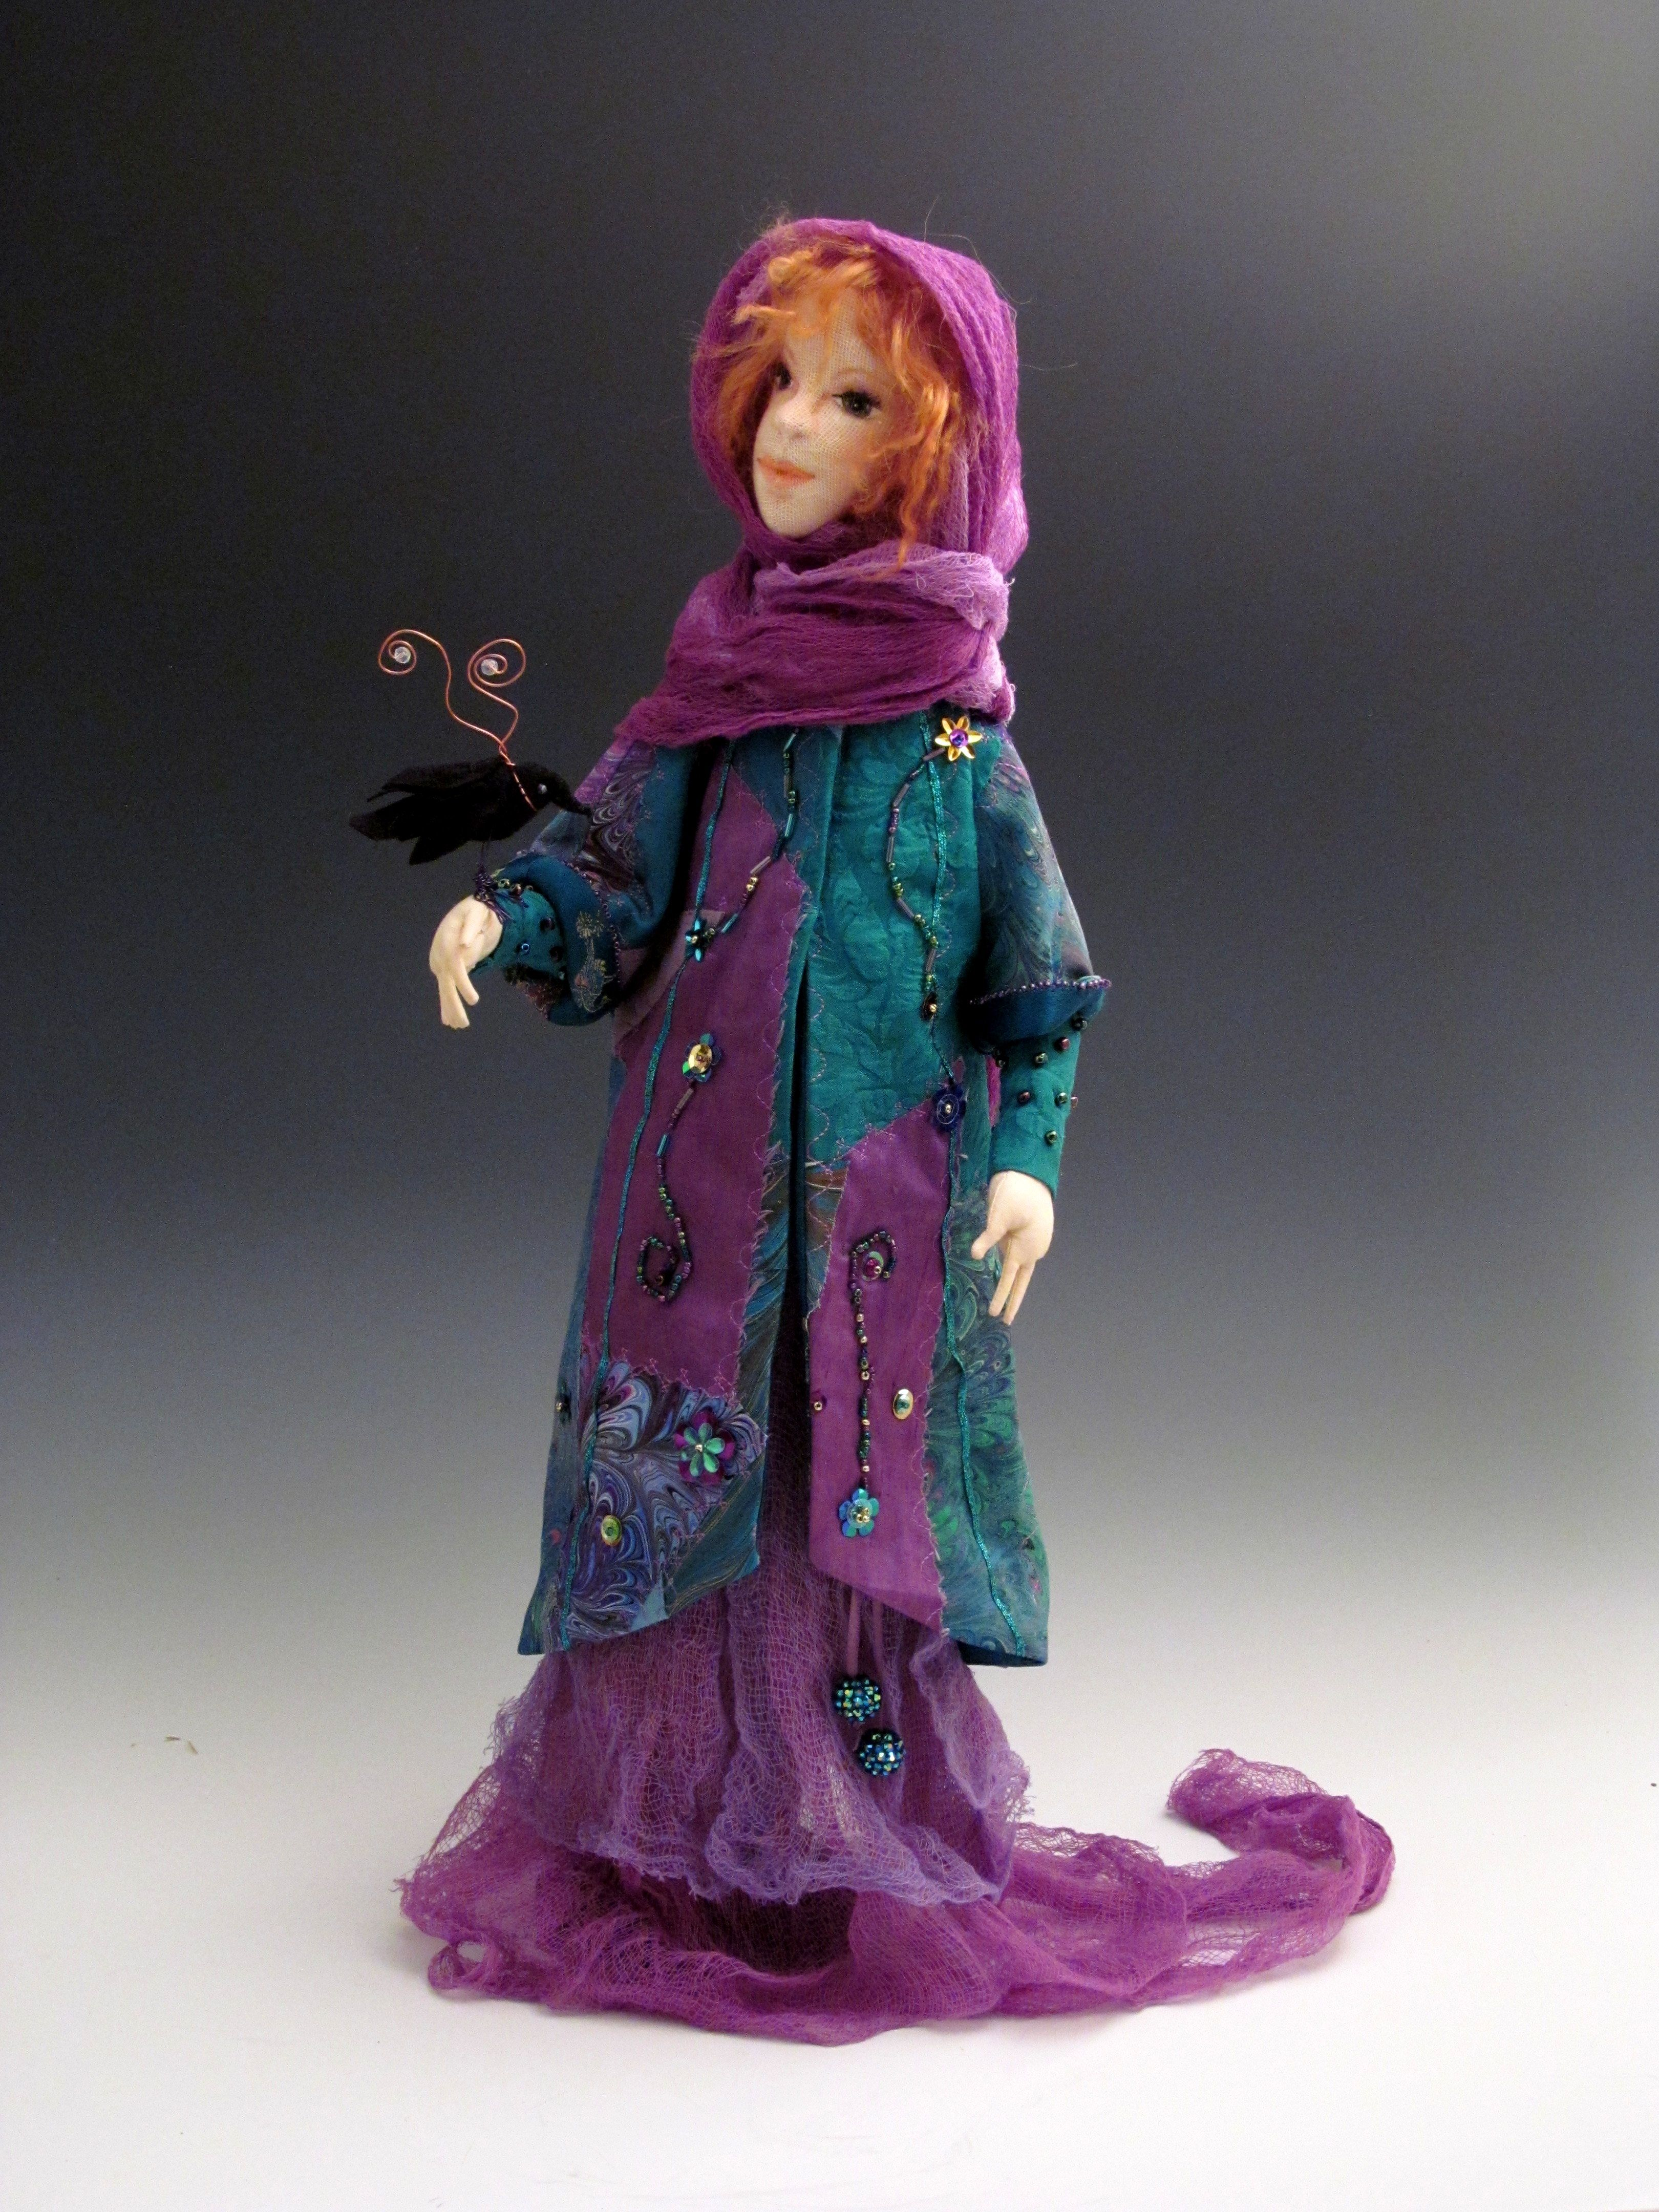 This Doll Is A Design By Angela Jarecki I Made It Taking An Online Class With Angela Art Dolls Doll Clothes Dolls